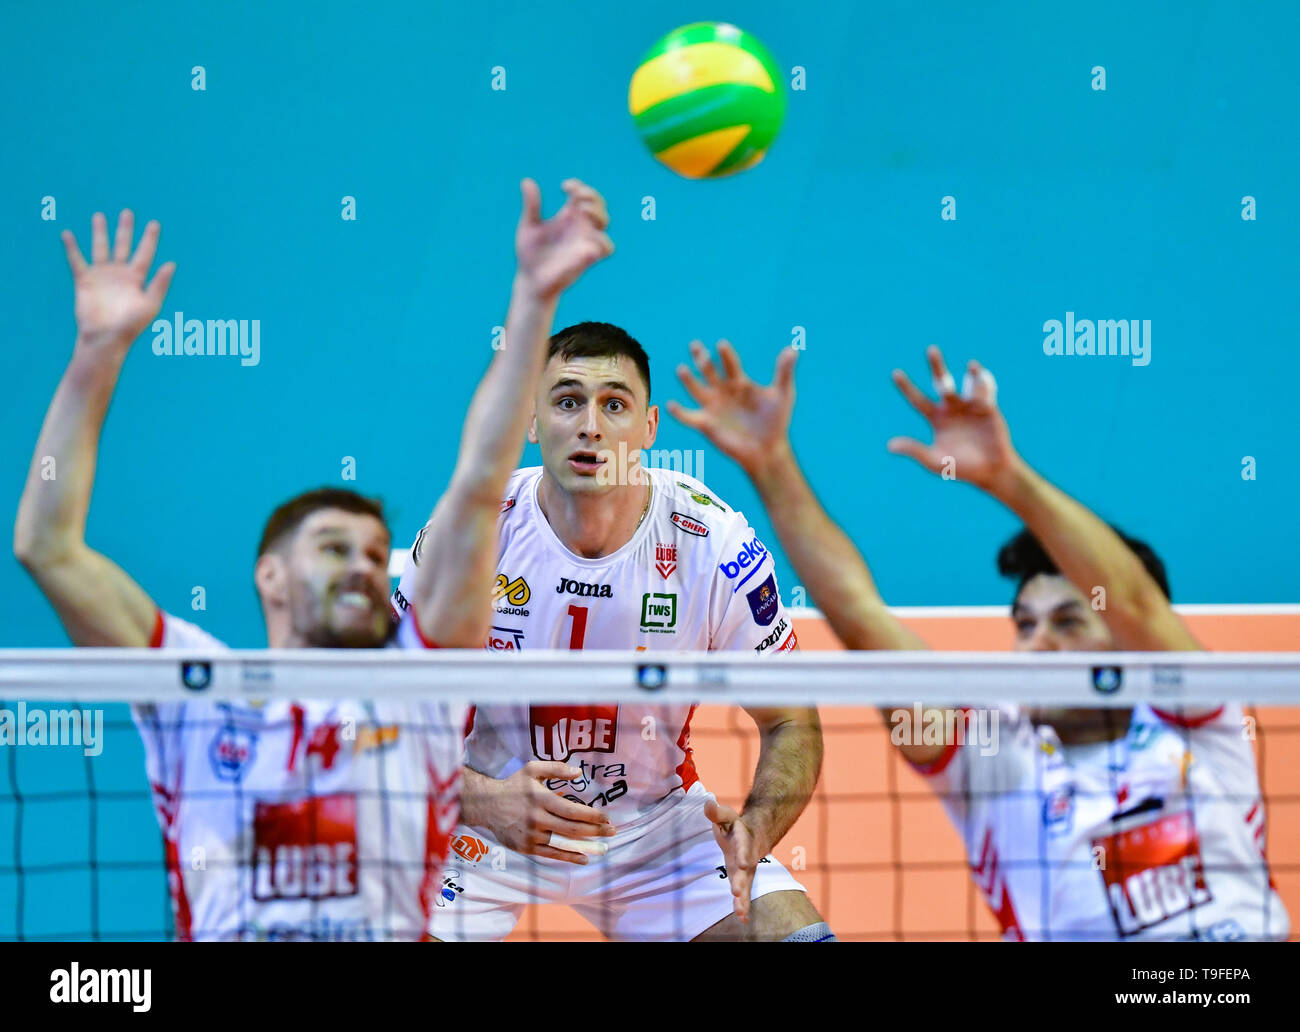 Berlin, Germany. 18th May, 2019. Volleyball, Men: Champions League, Zenit Kazan - Cucine Lube Civitanova, knockout round, final. Tsvetan Sokolov (M) from Lube observes the block through Bruno Mossa de Rezende (l) and Dragan Stankovic (r). Credit: Soeren Stache/dpa/Alamy Live News Stock Photo